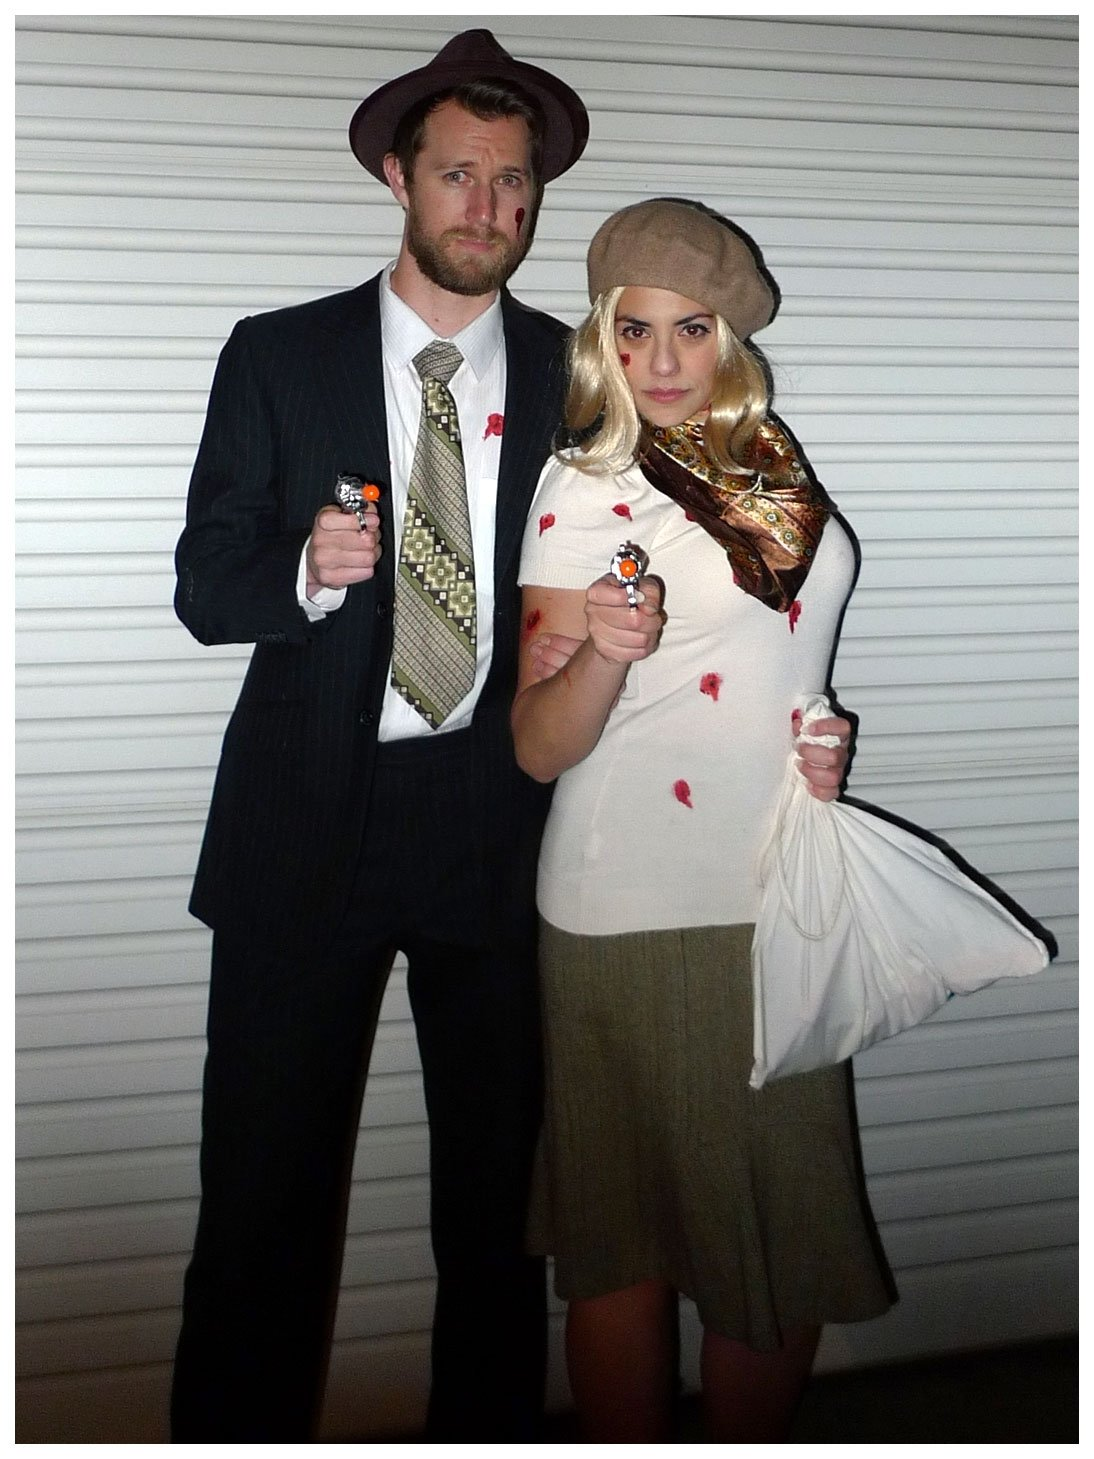 10 Most Recommended Bonnie And Clyde Costume Ideas bonnie and clyde shot up costumes theme me costume fancy dress 2020